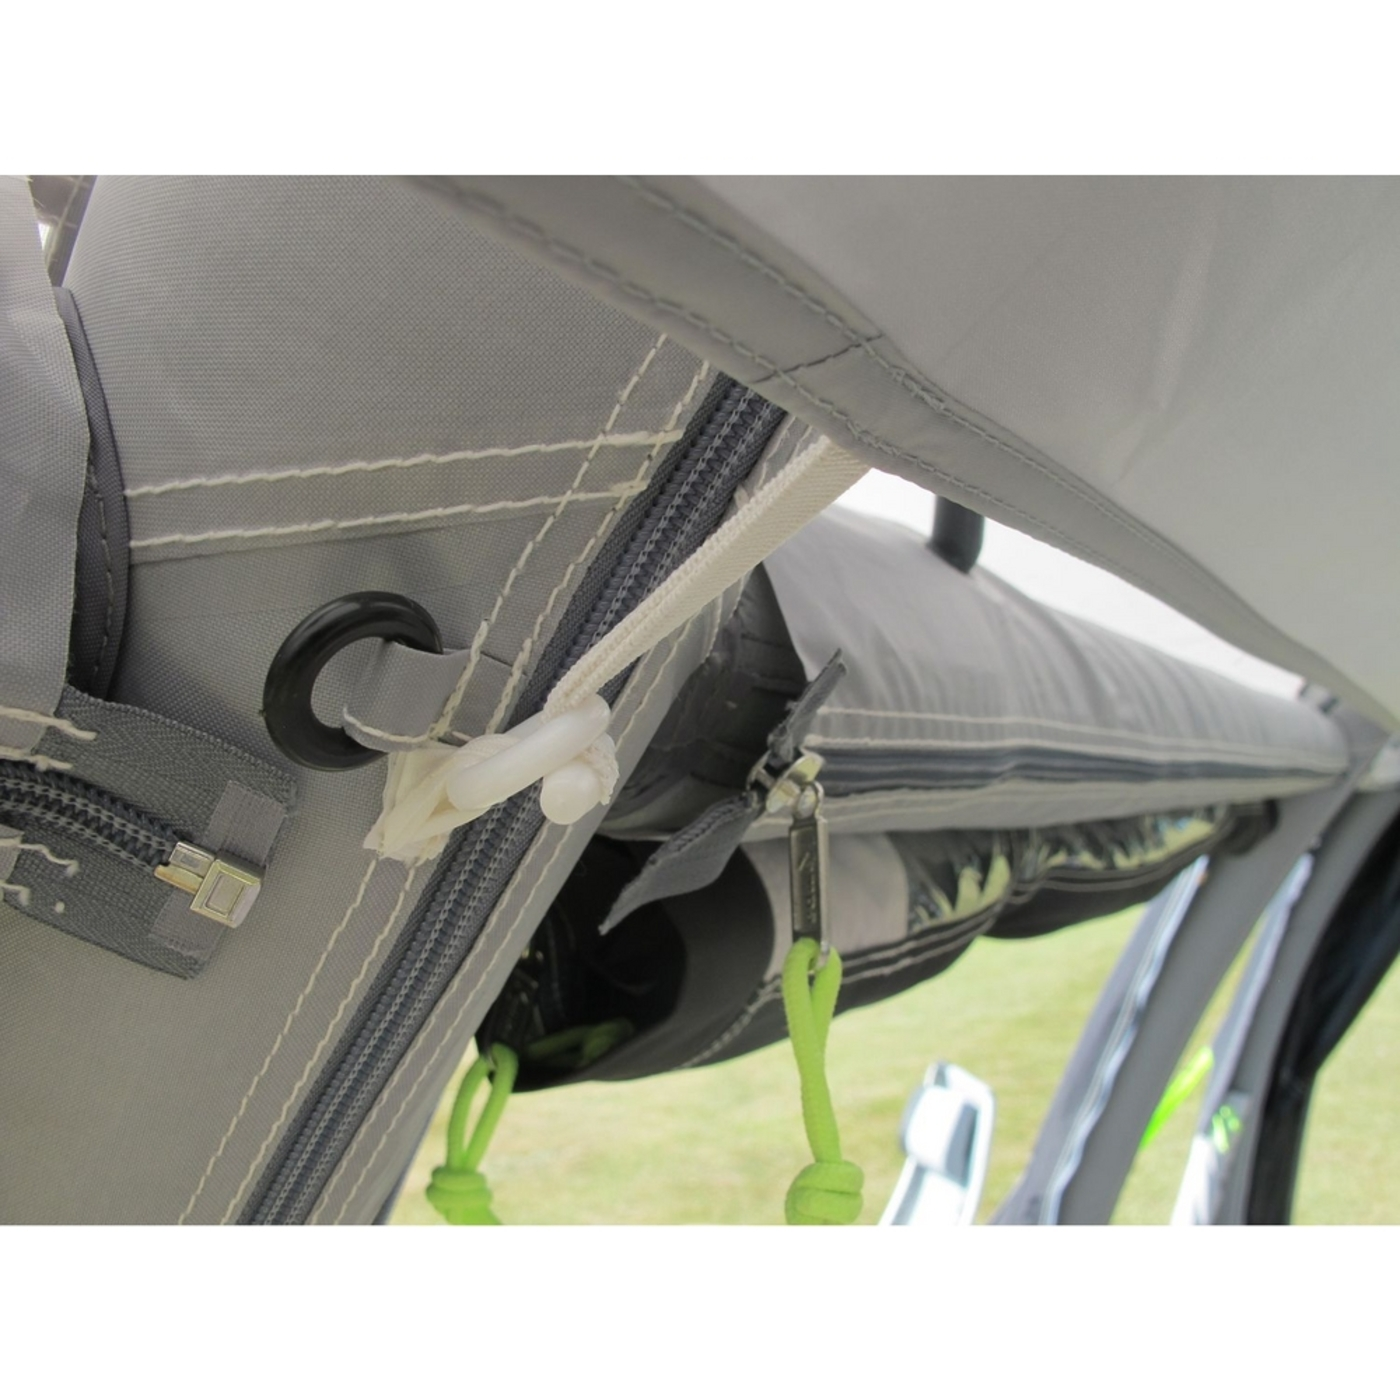 Kampa 390 Awning Accessories